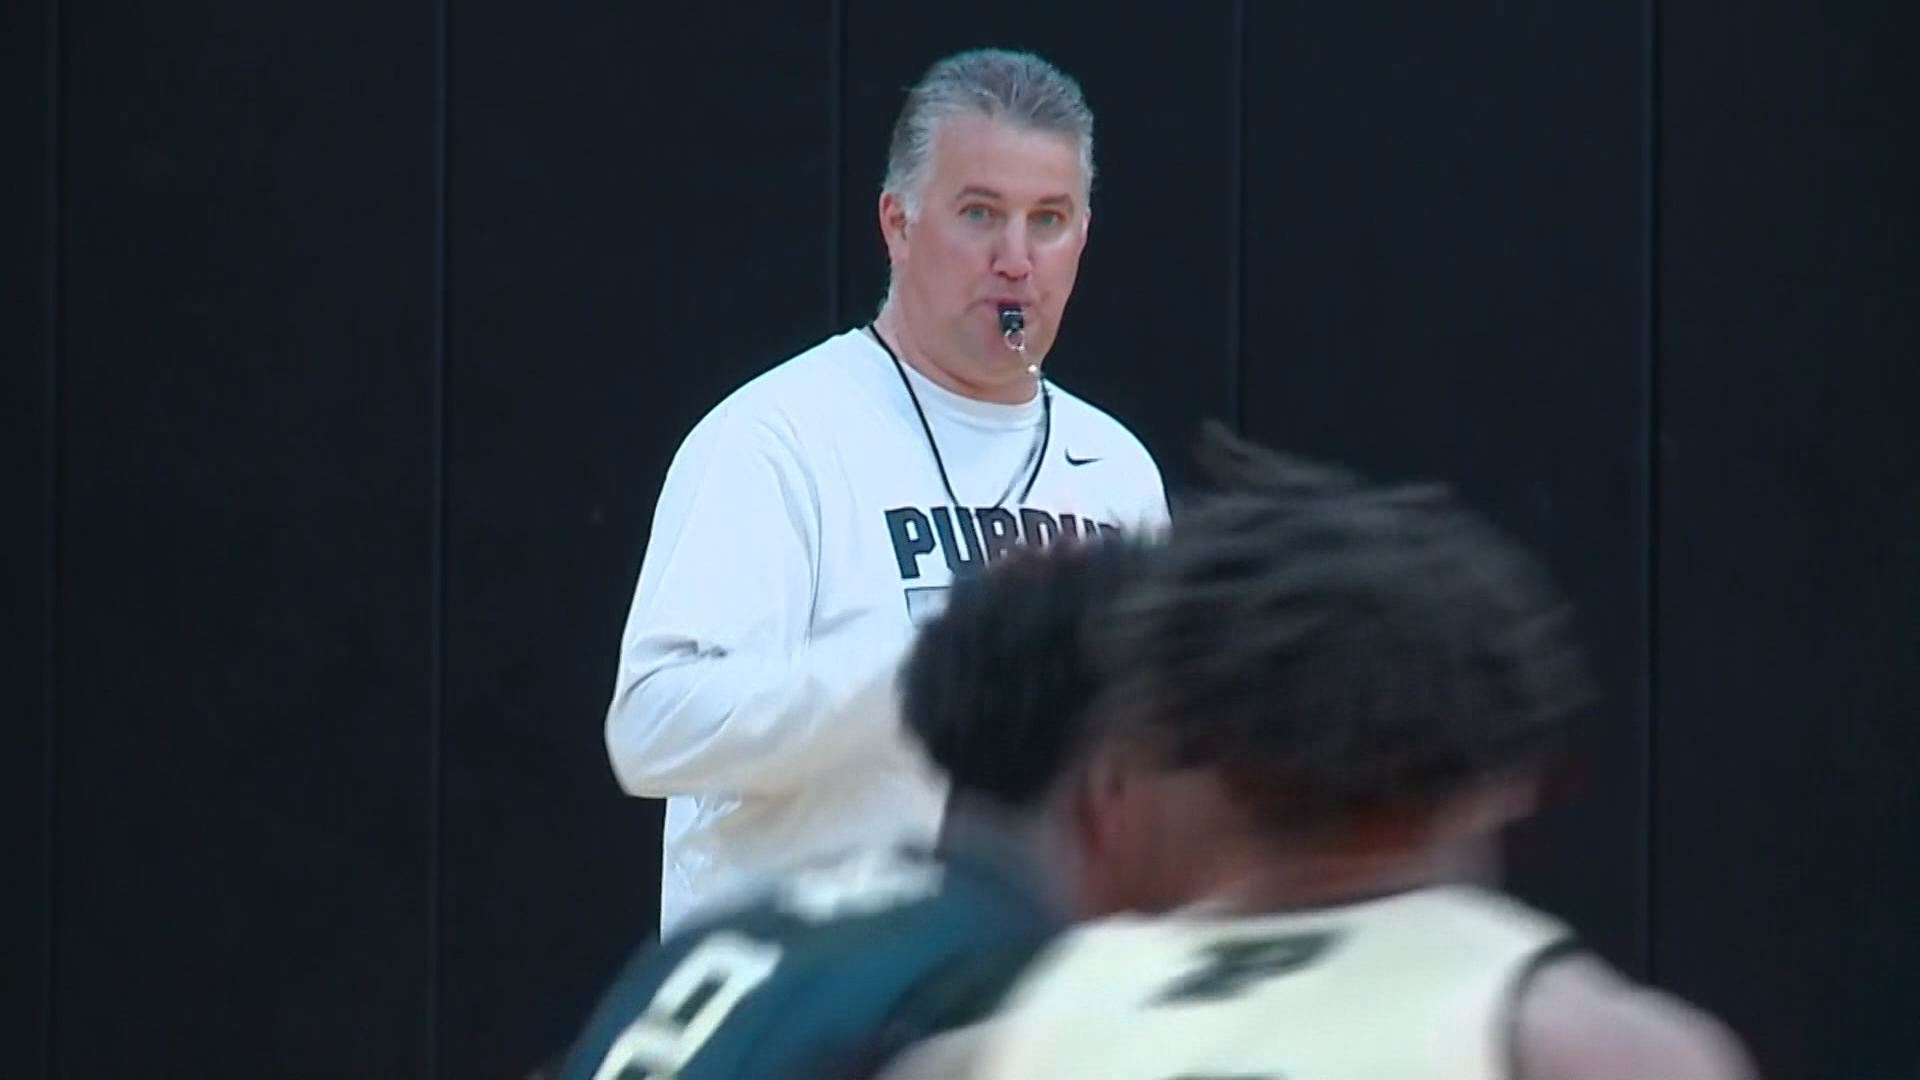 matt painter purdue basketball